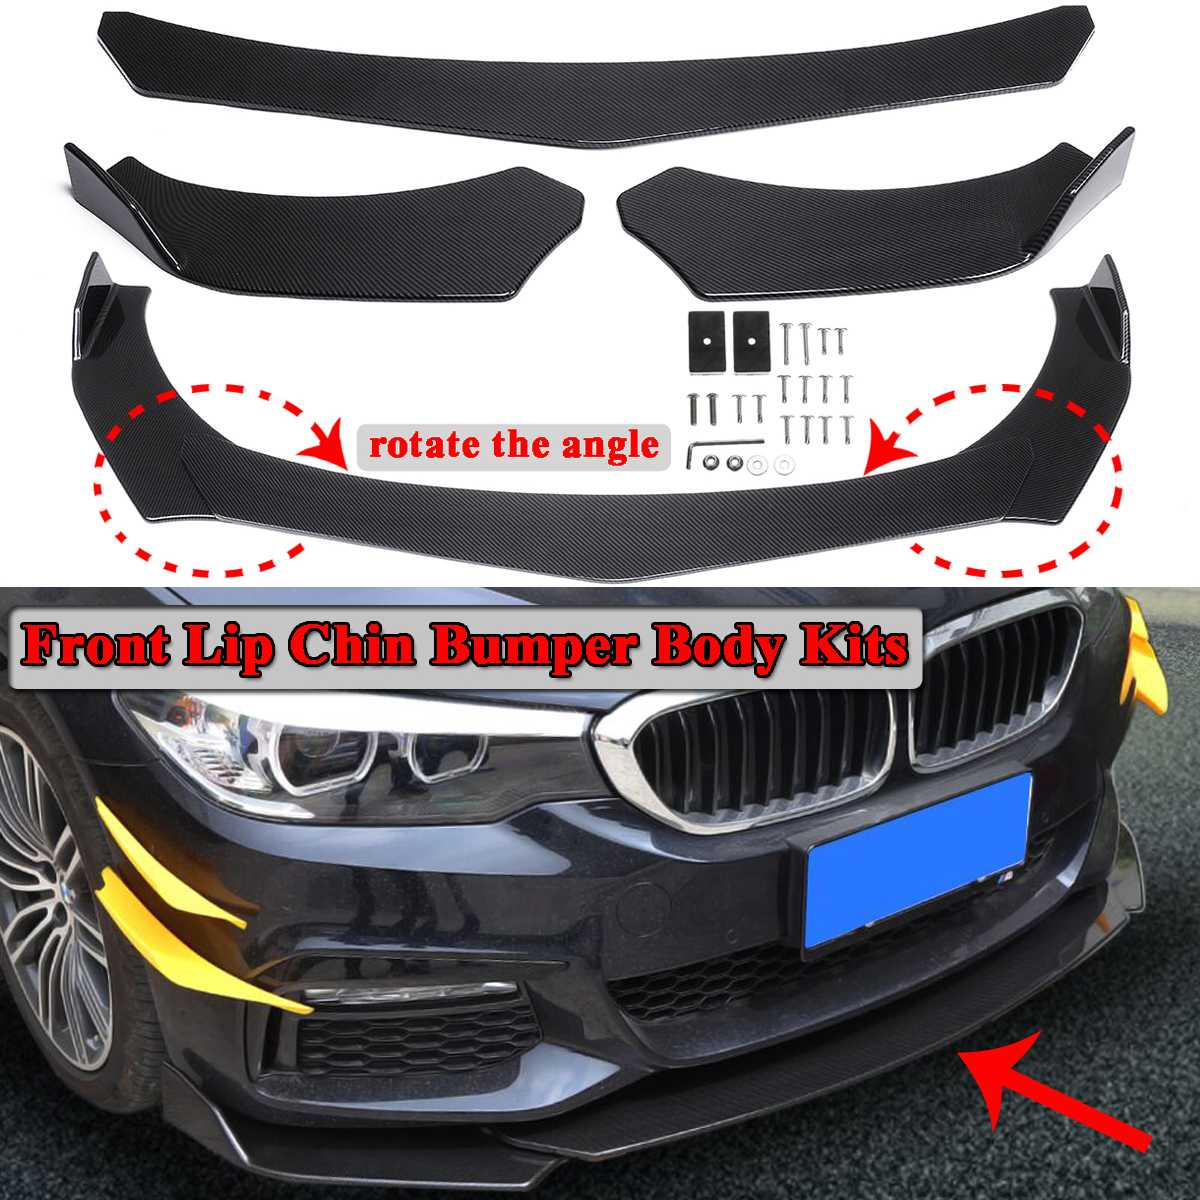 3pcs Carbon Fiber Look Universal Car Front Bumper Lip Bumper Spoiler Lip Body Kits For BMW F10 F30 F32 F36 F80 M3 F82 M4 G30 image